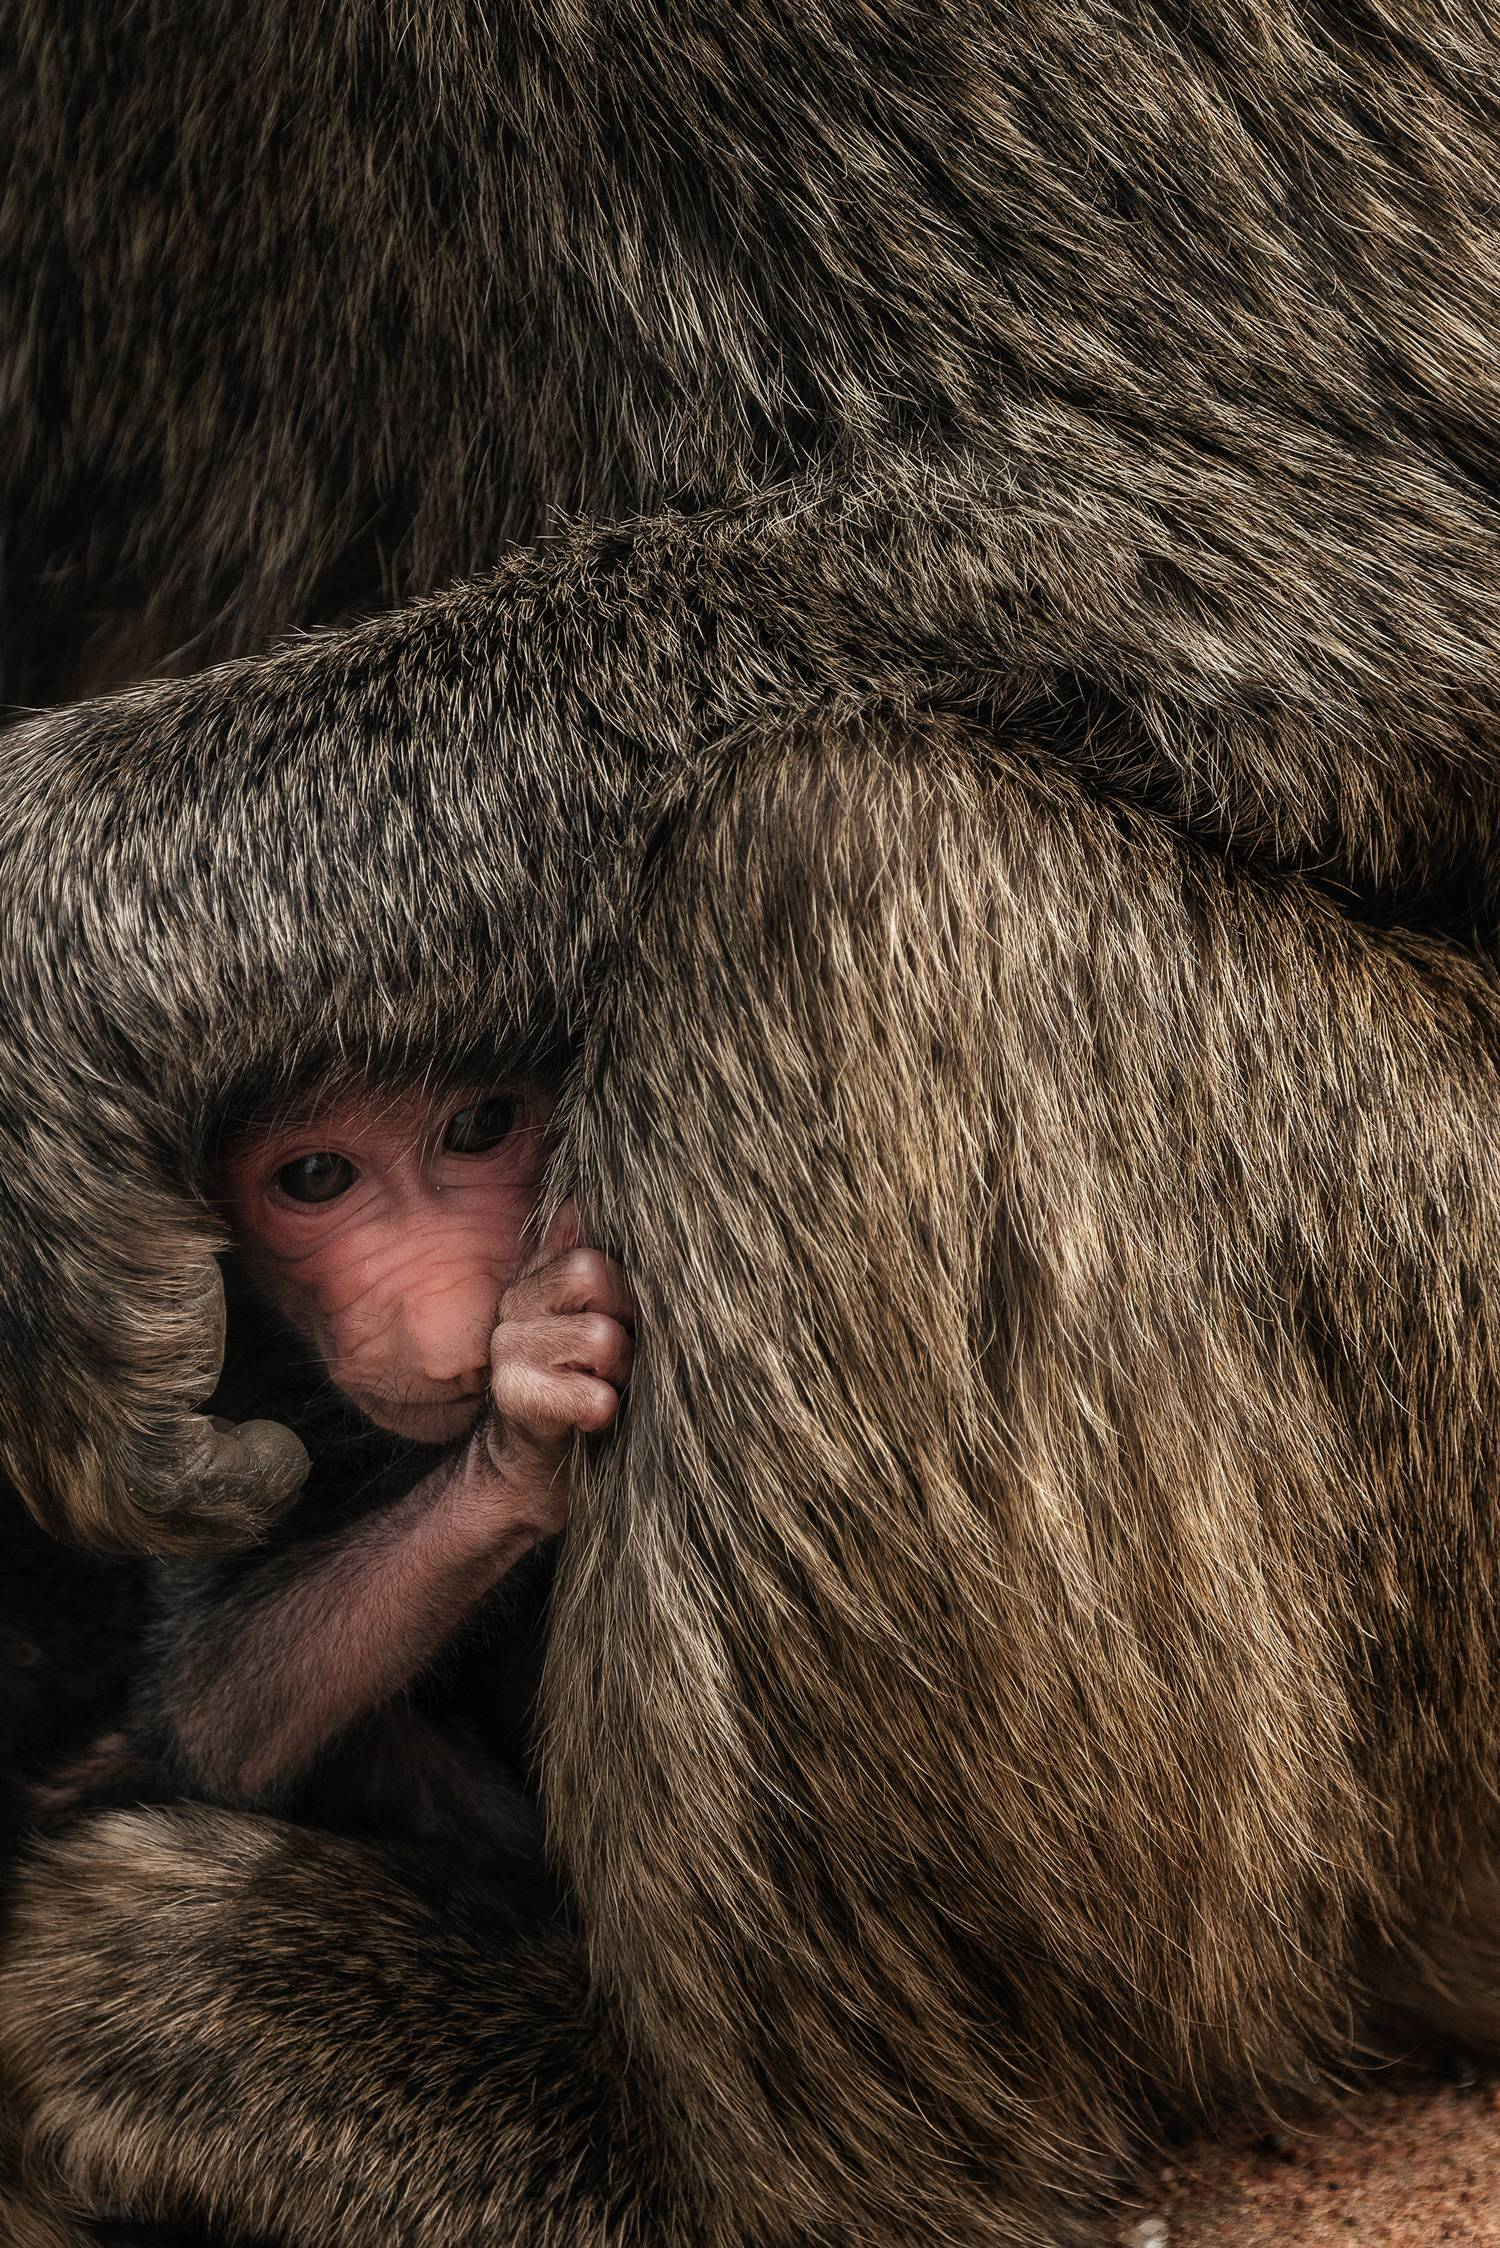 Newborn baby hides next to mother, Tanzania © Chris Schmid